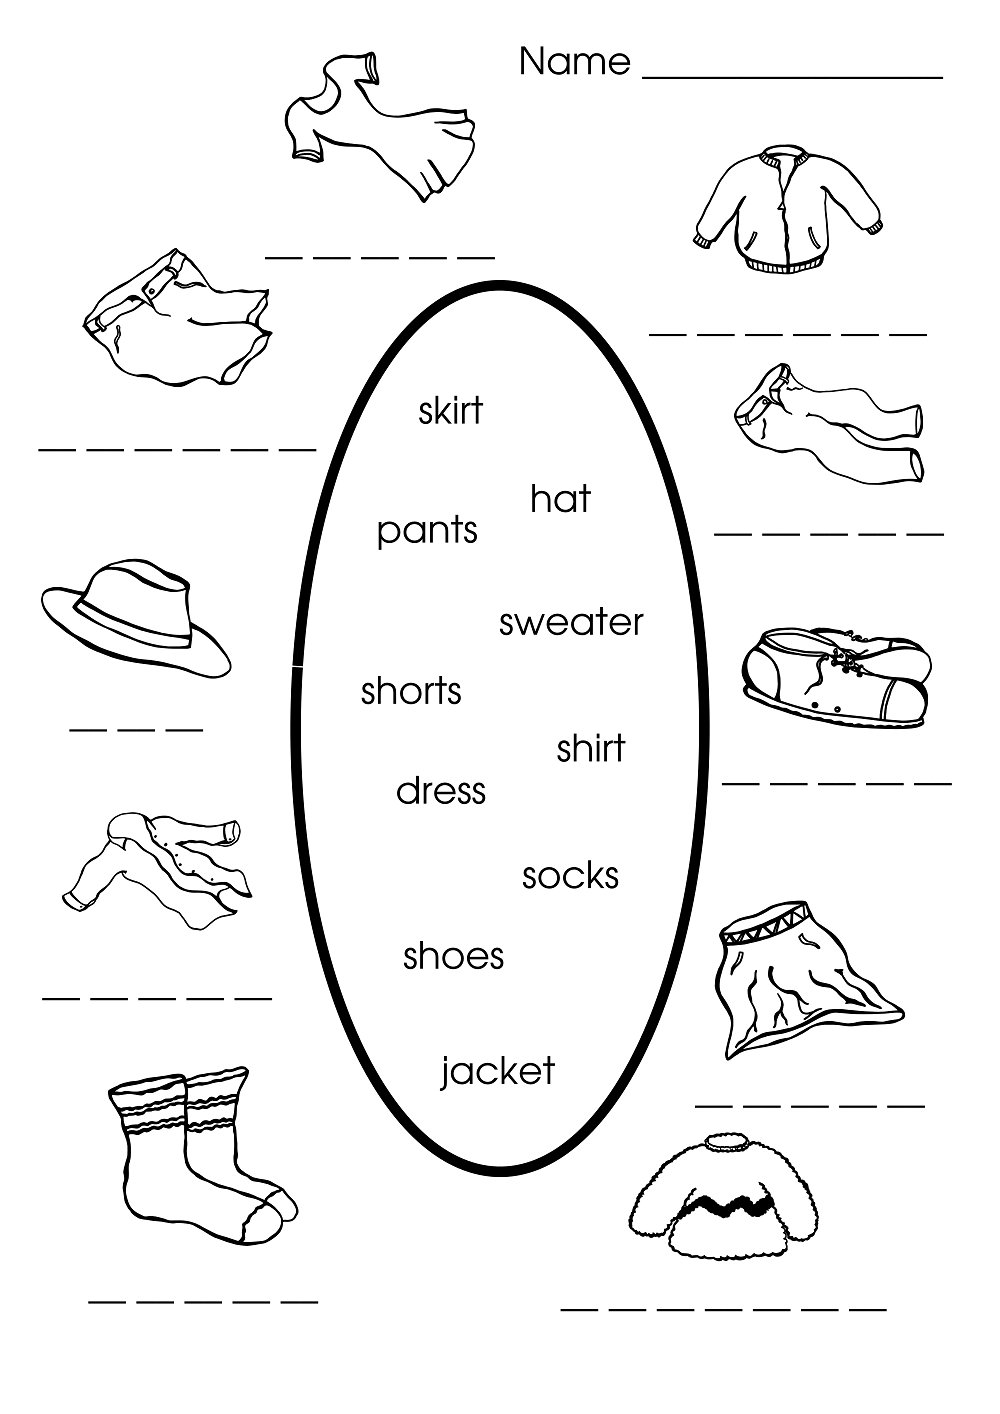 Free Printable Worksheets Learning English For Kids English Activities For Kids Kids English [ 1414 x 1000 Pixel ]